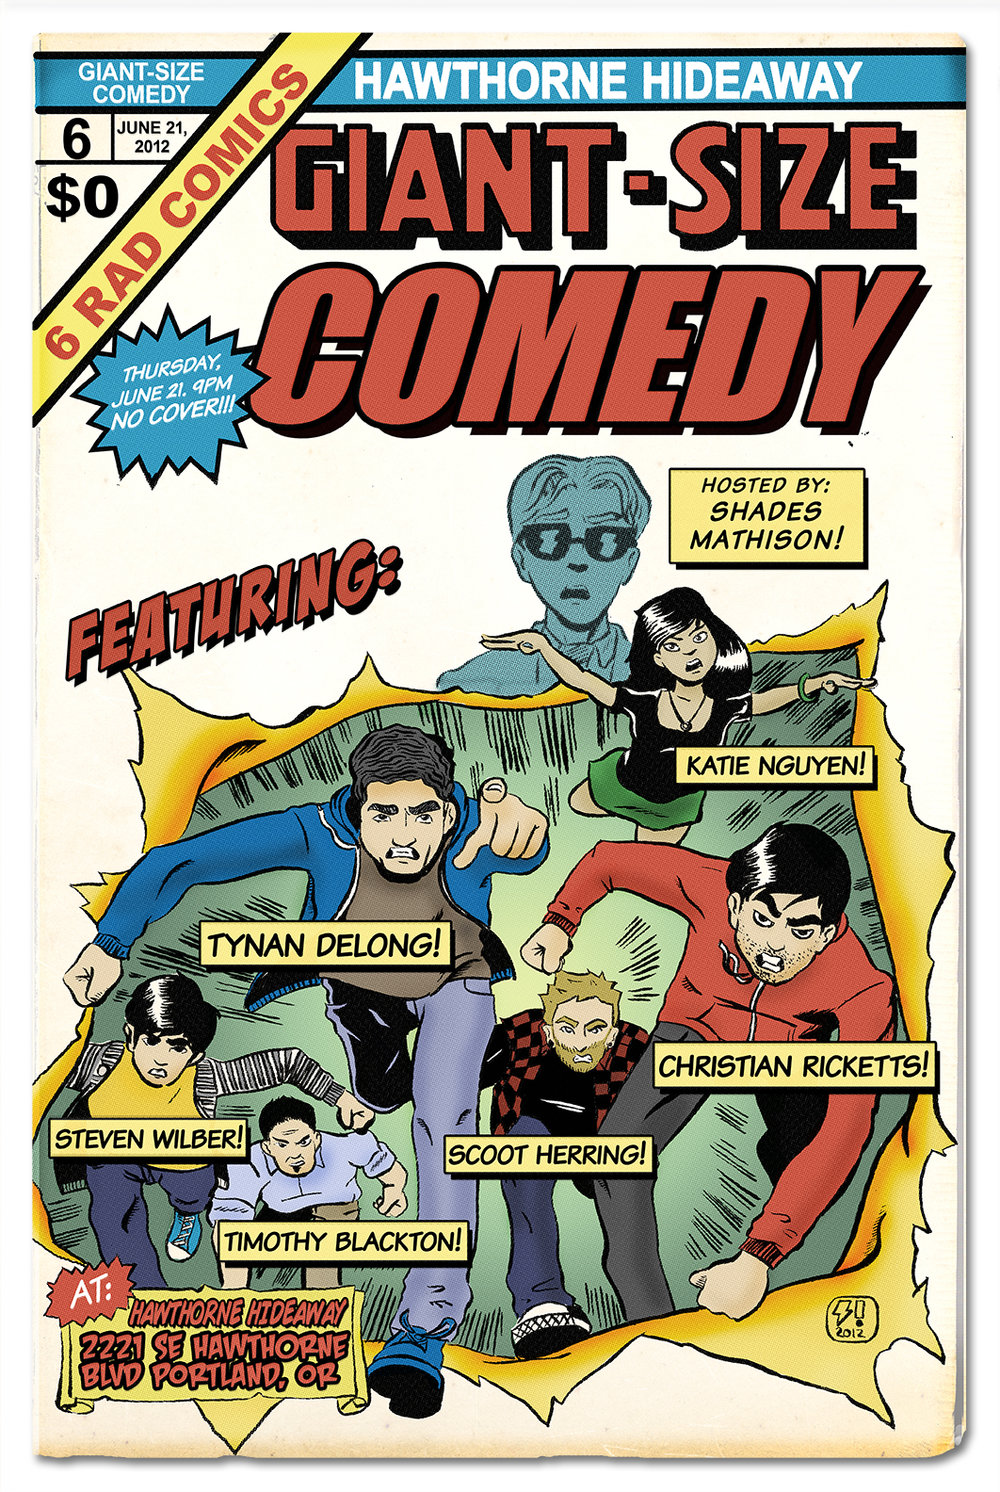 A poster for a comedy show, done up to look like Giant-Size X-Men #1.